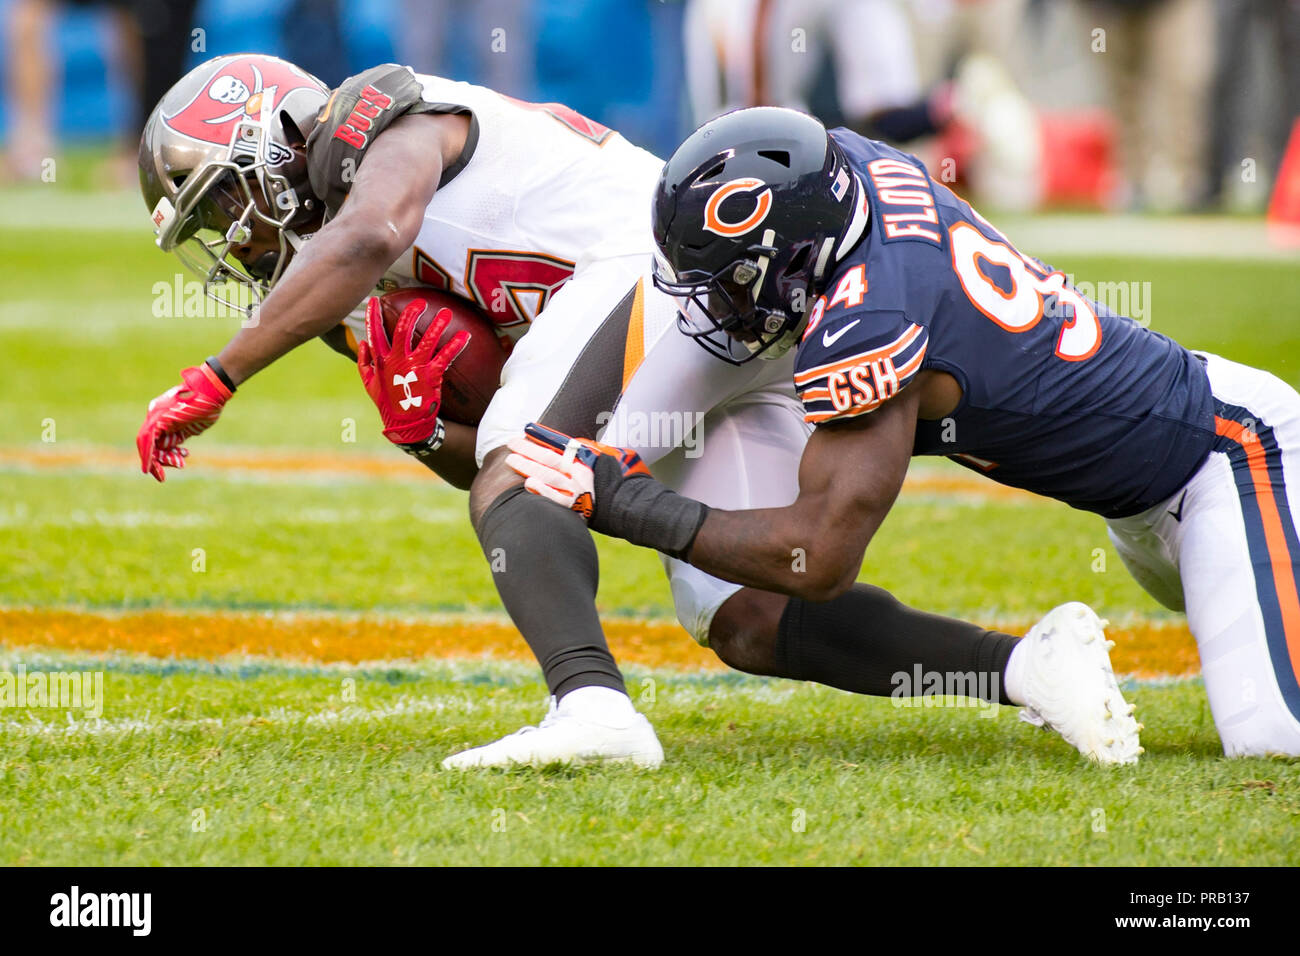 14d8feda52f Bears #94 Leonard Floyd tackles Buccaneers #25 Peyton Barber during the NFL  Game between the Tampa Bay Buccaneers and Chicago Bears at Soldier Field in  ...